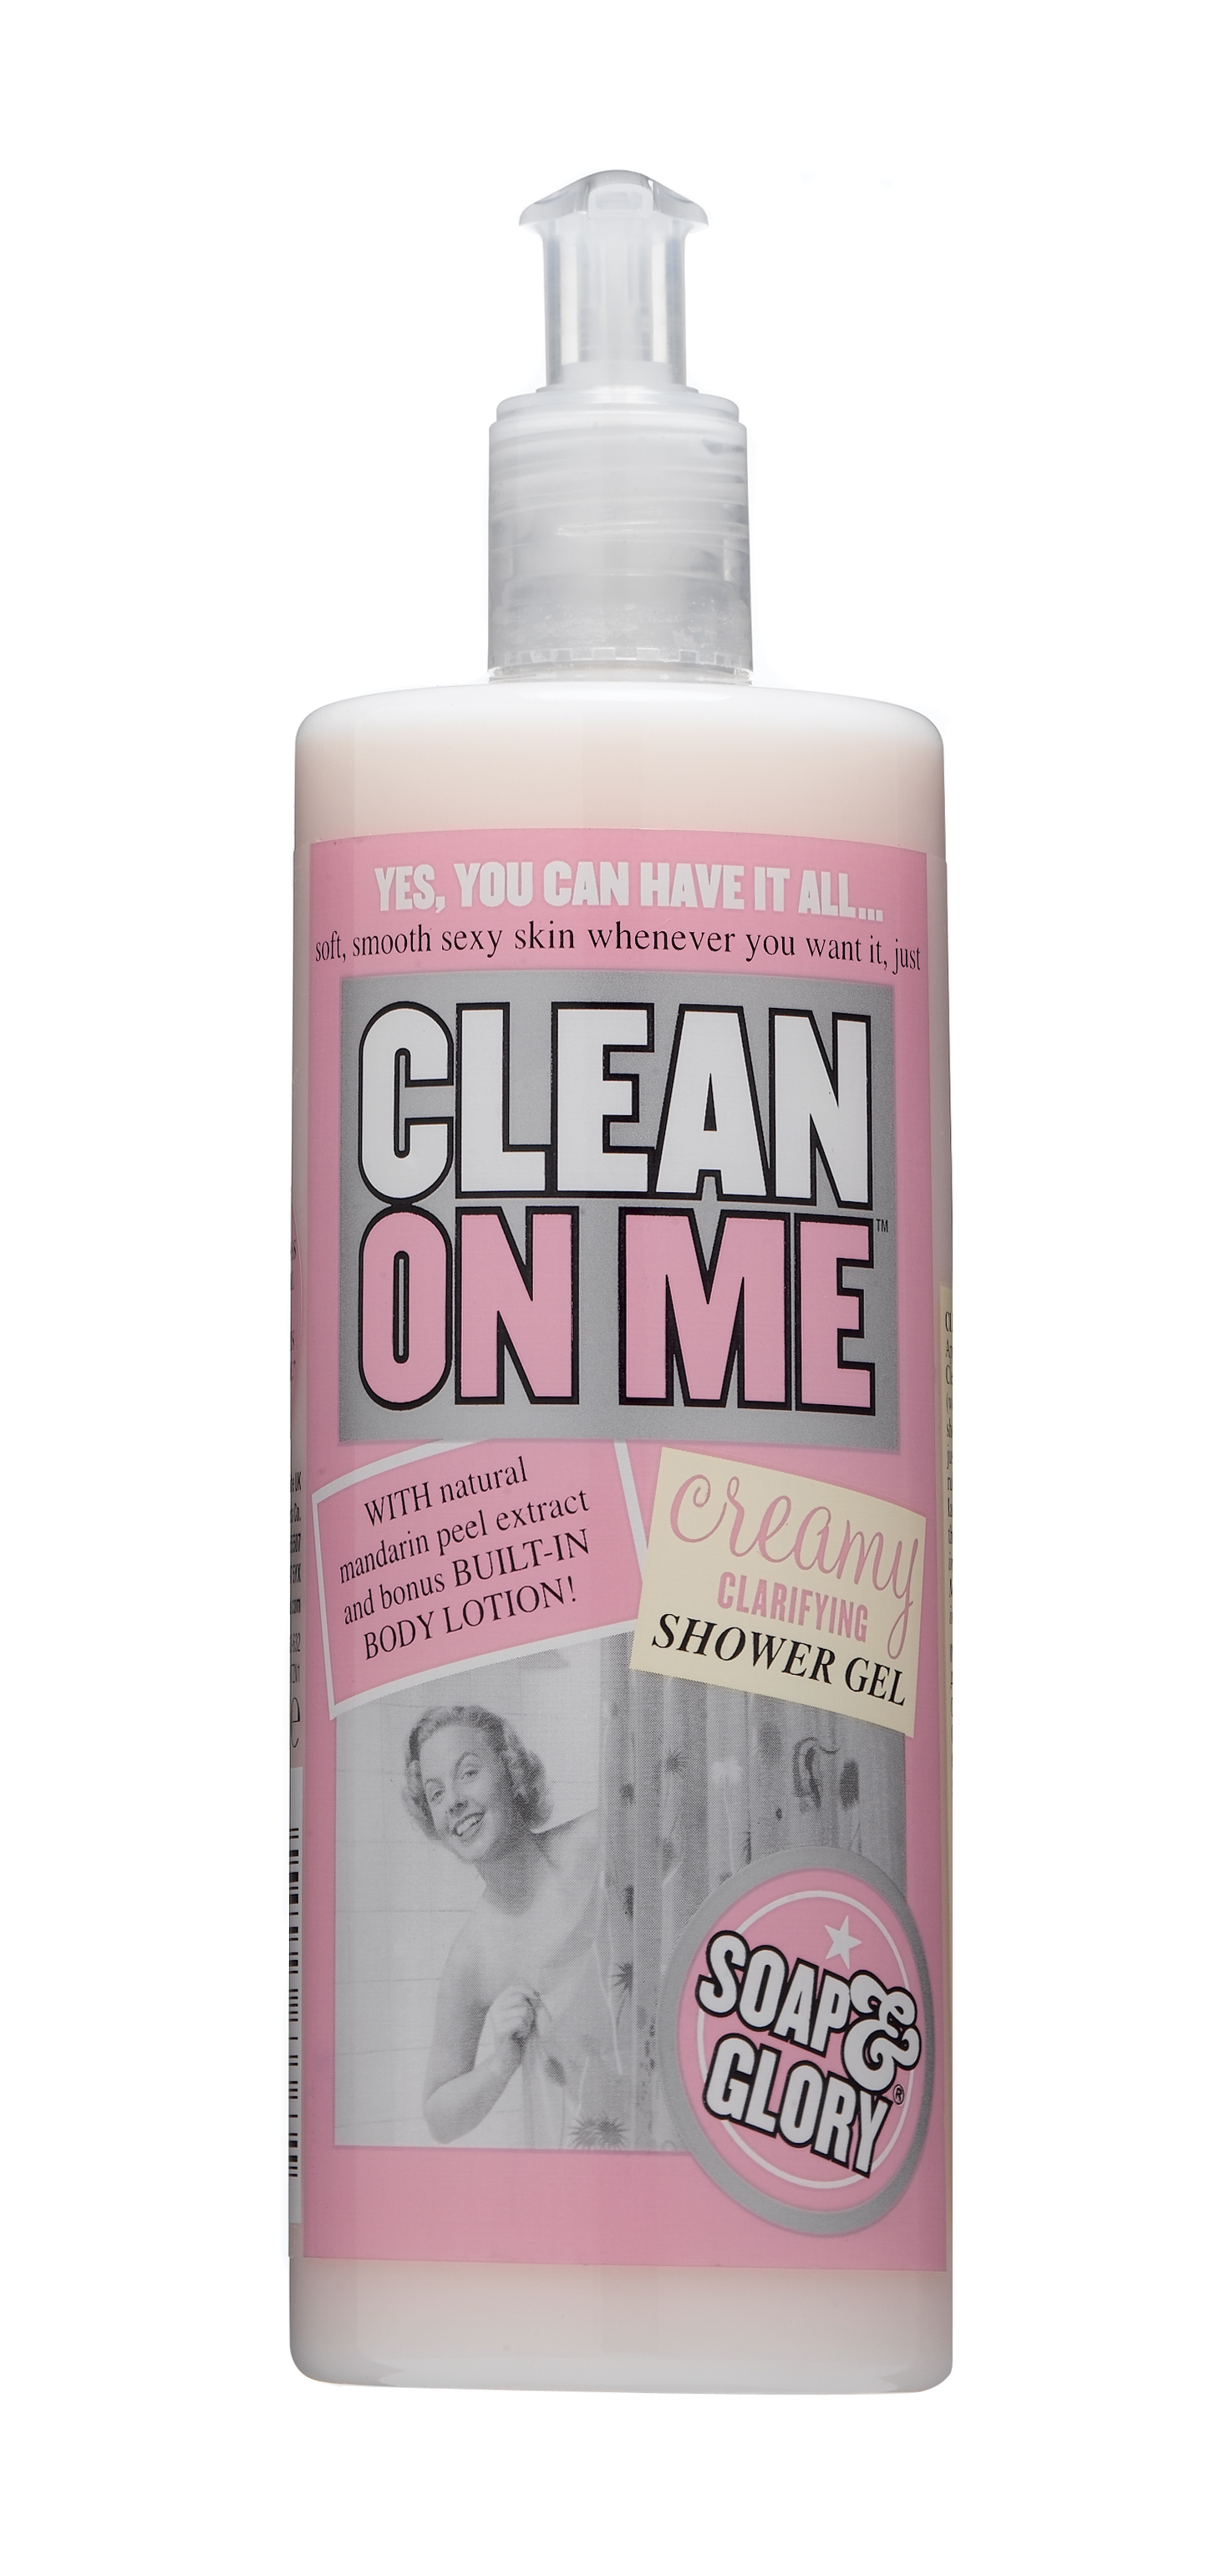 Soap U0026 Glory Clean On Me Creamy Clarifying Shower Gel Image Gallery